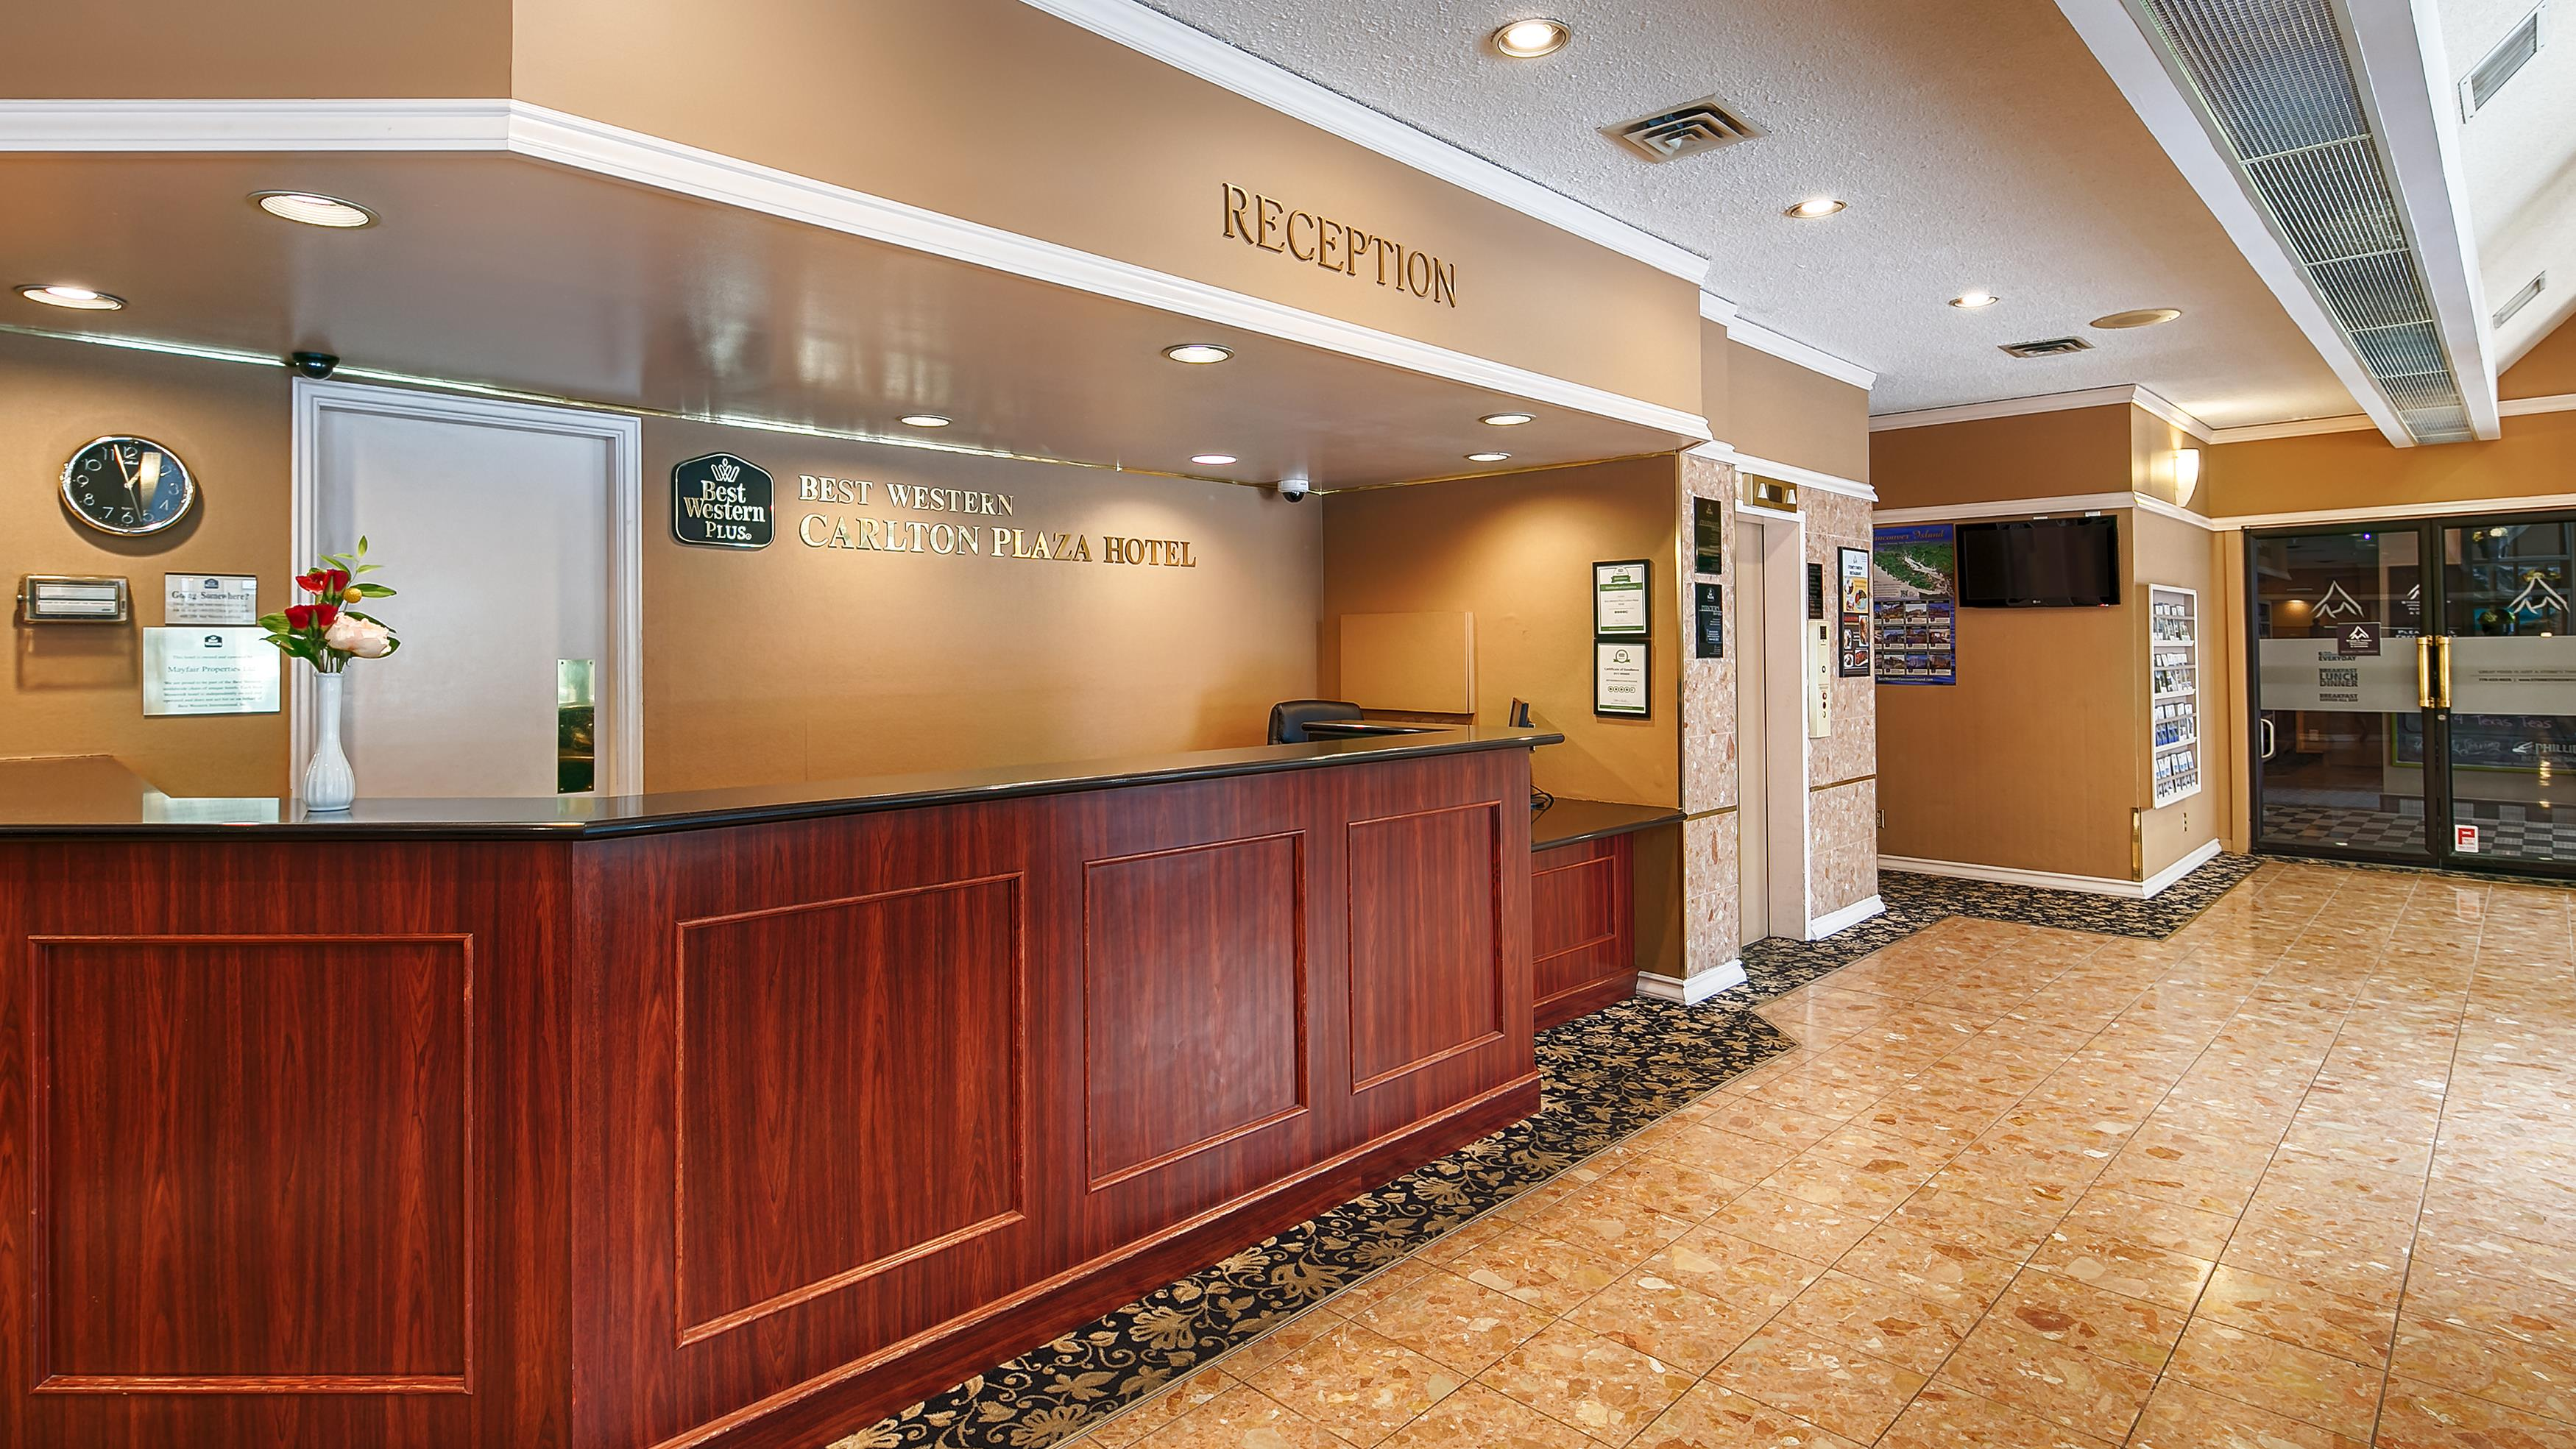 Best Western Plus Carlton Plaza Hotel in Victoria: Front Desk